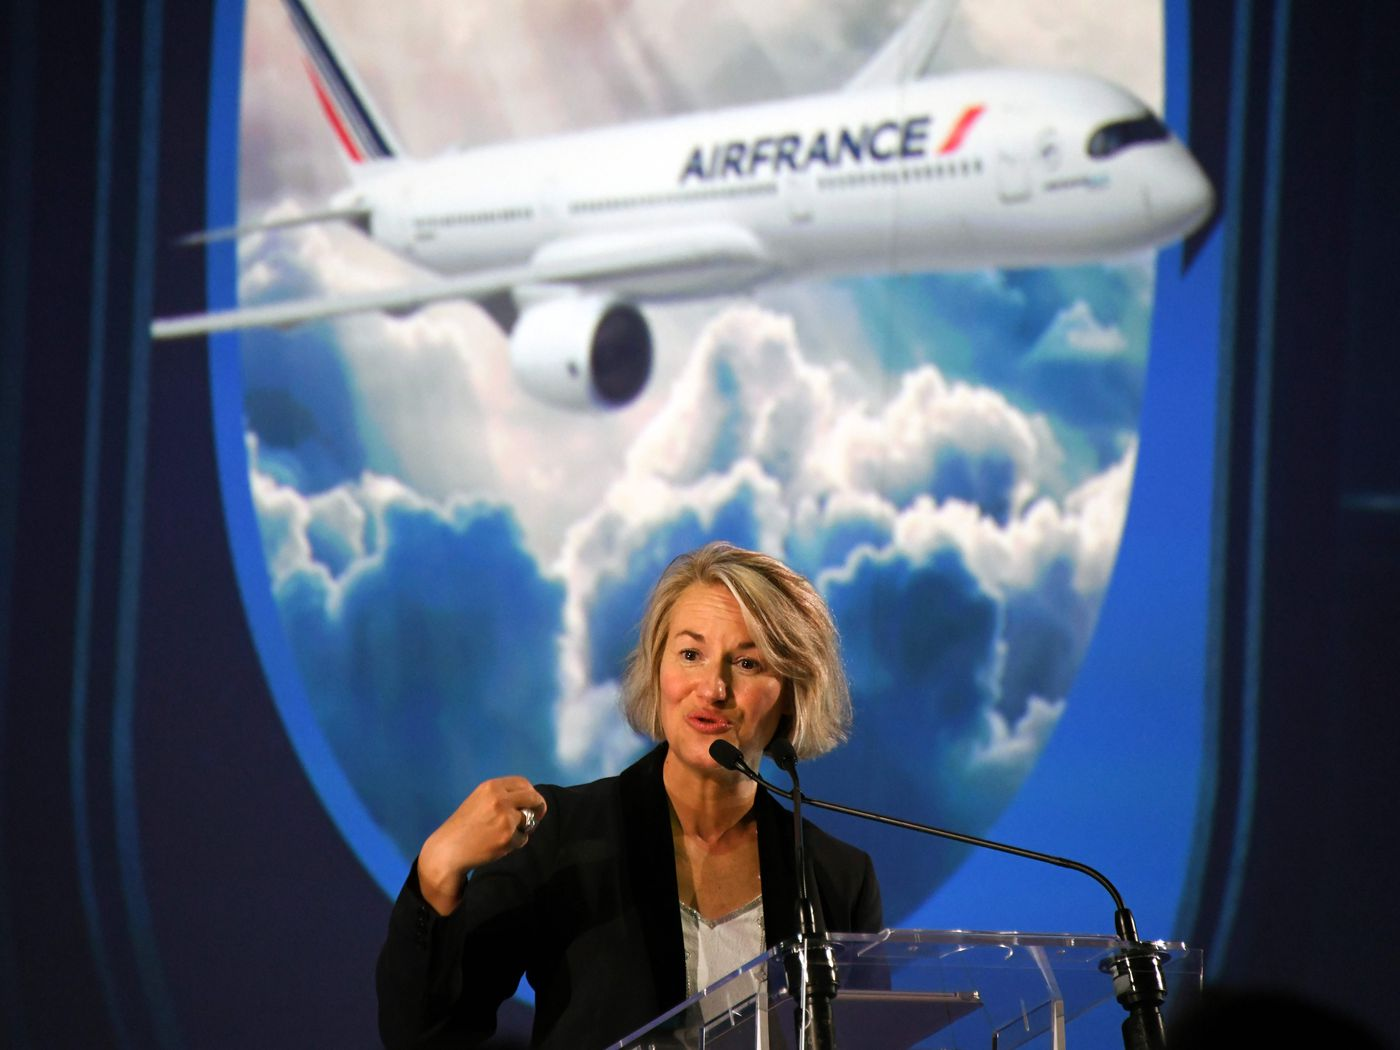 Climate Change Air France And Emirates Bosses Acknowledge Flying Shame Movement Vox